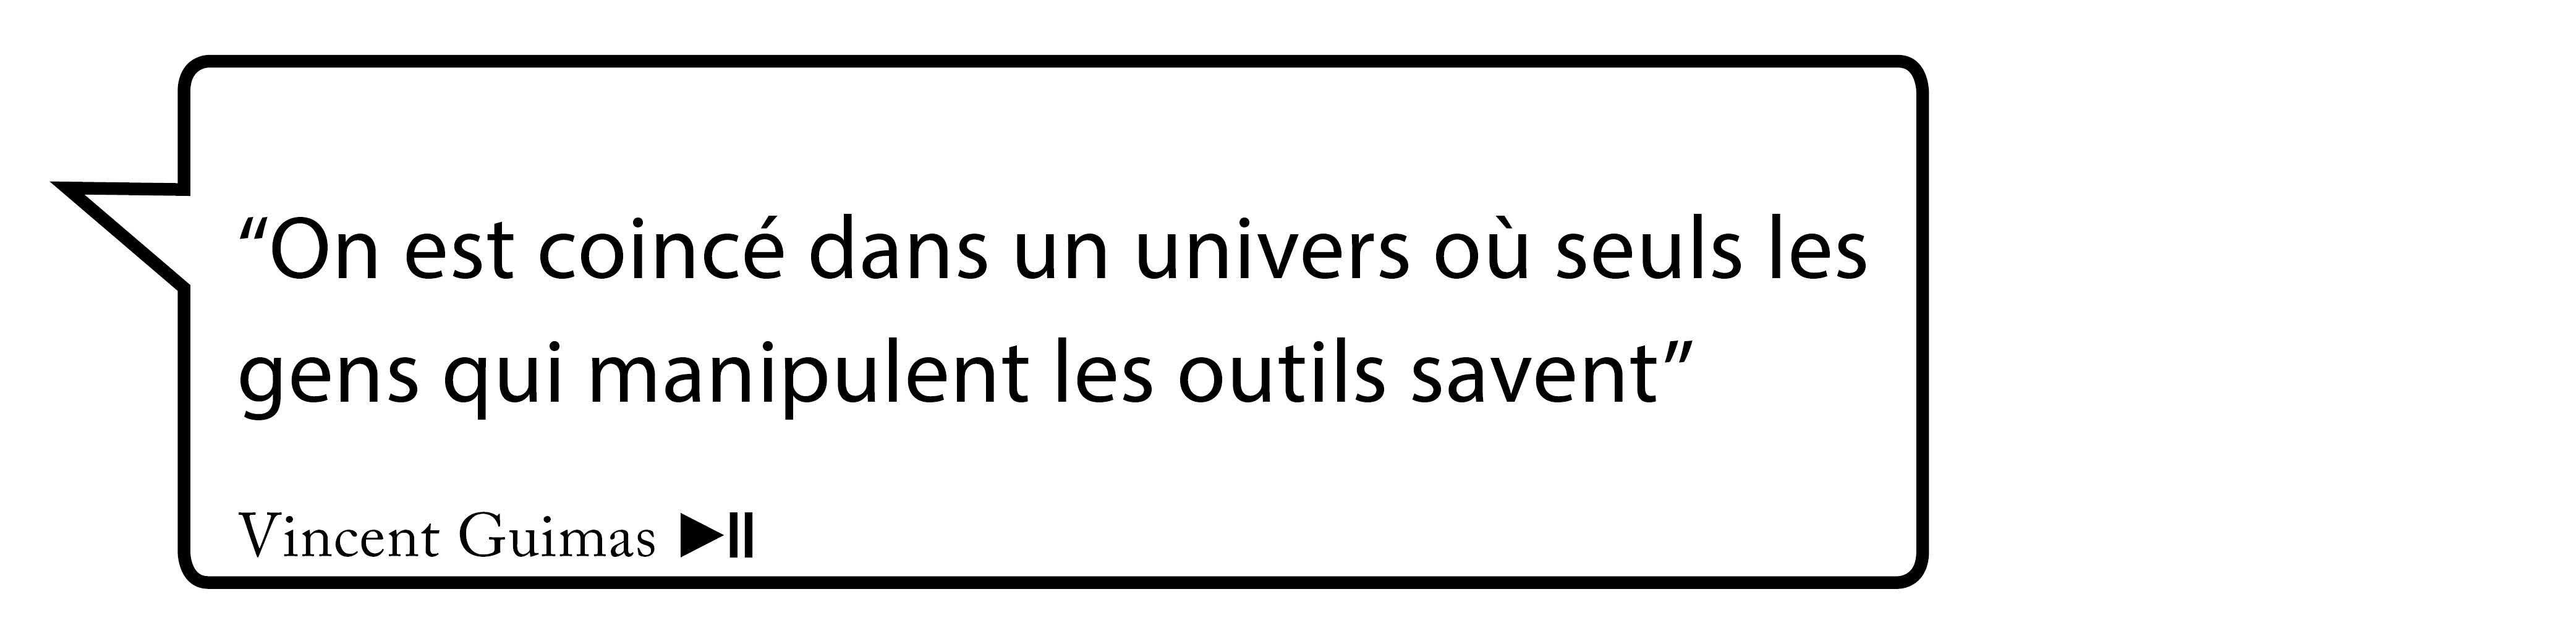 citationsblog6